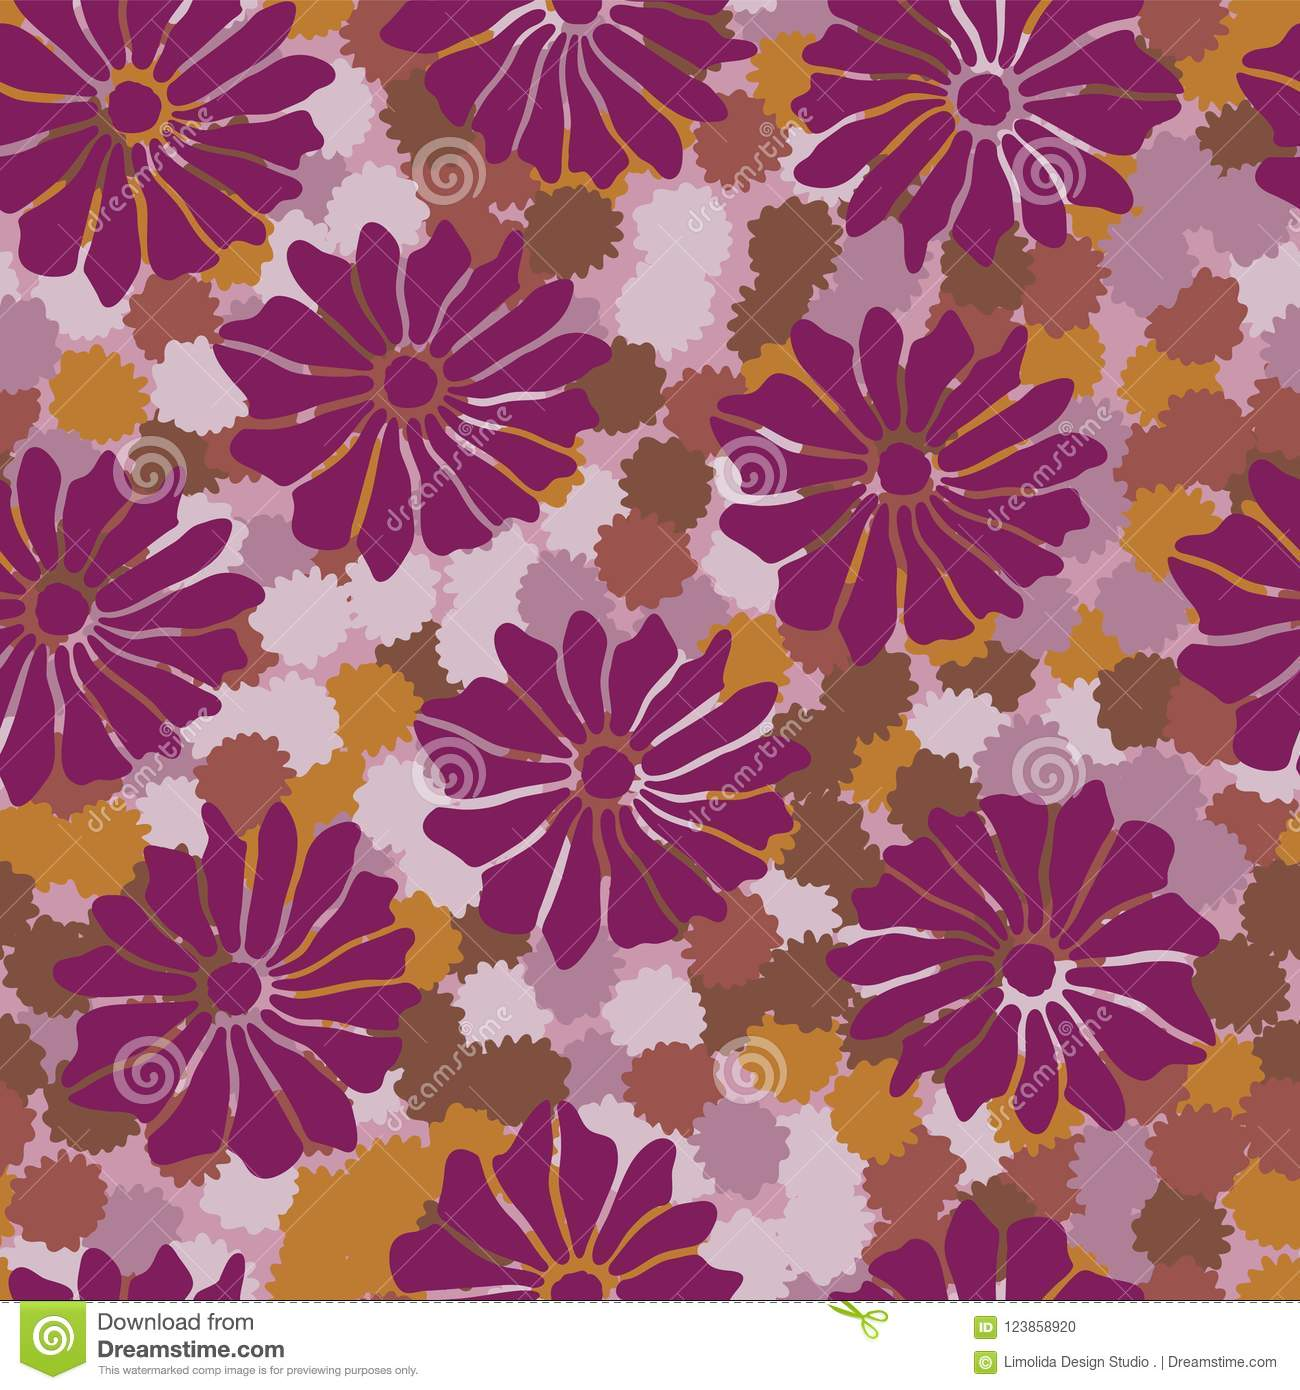 Bold Vintage Floral Purple and Orange 20s Stock Vector ...